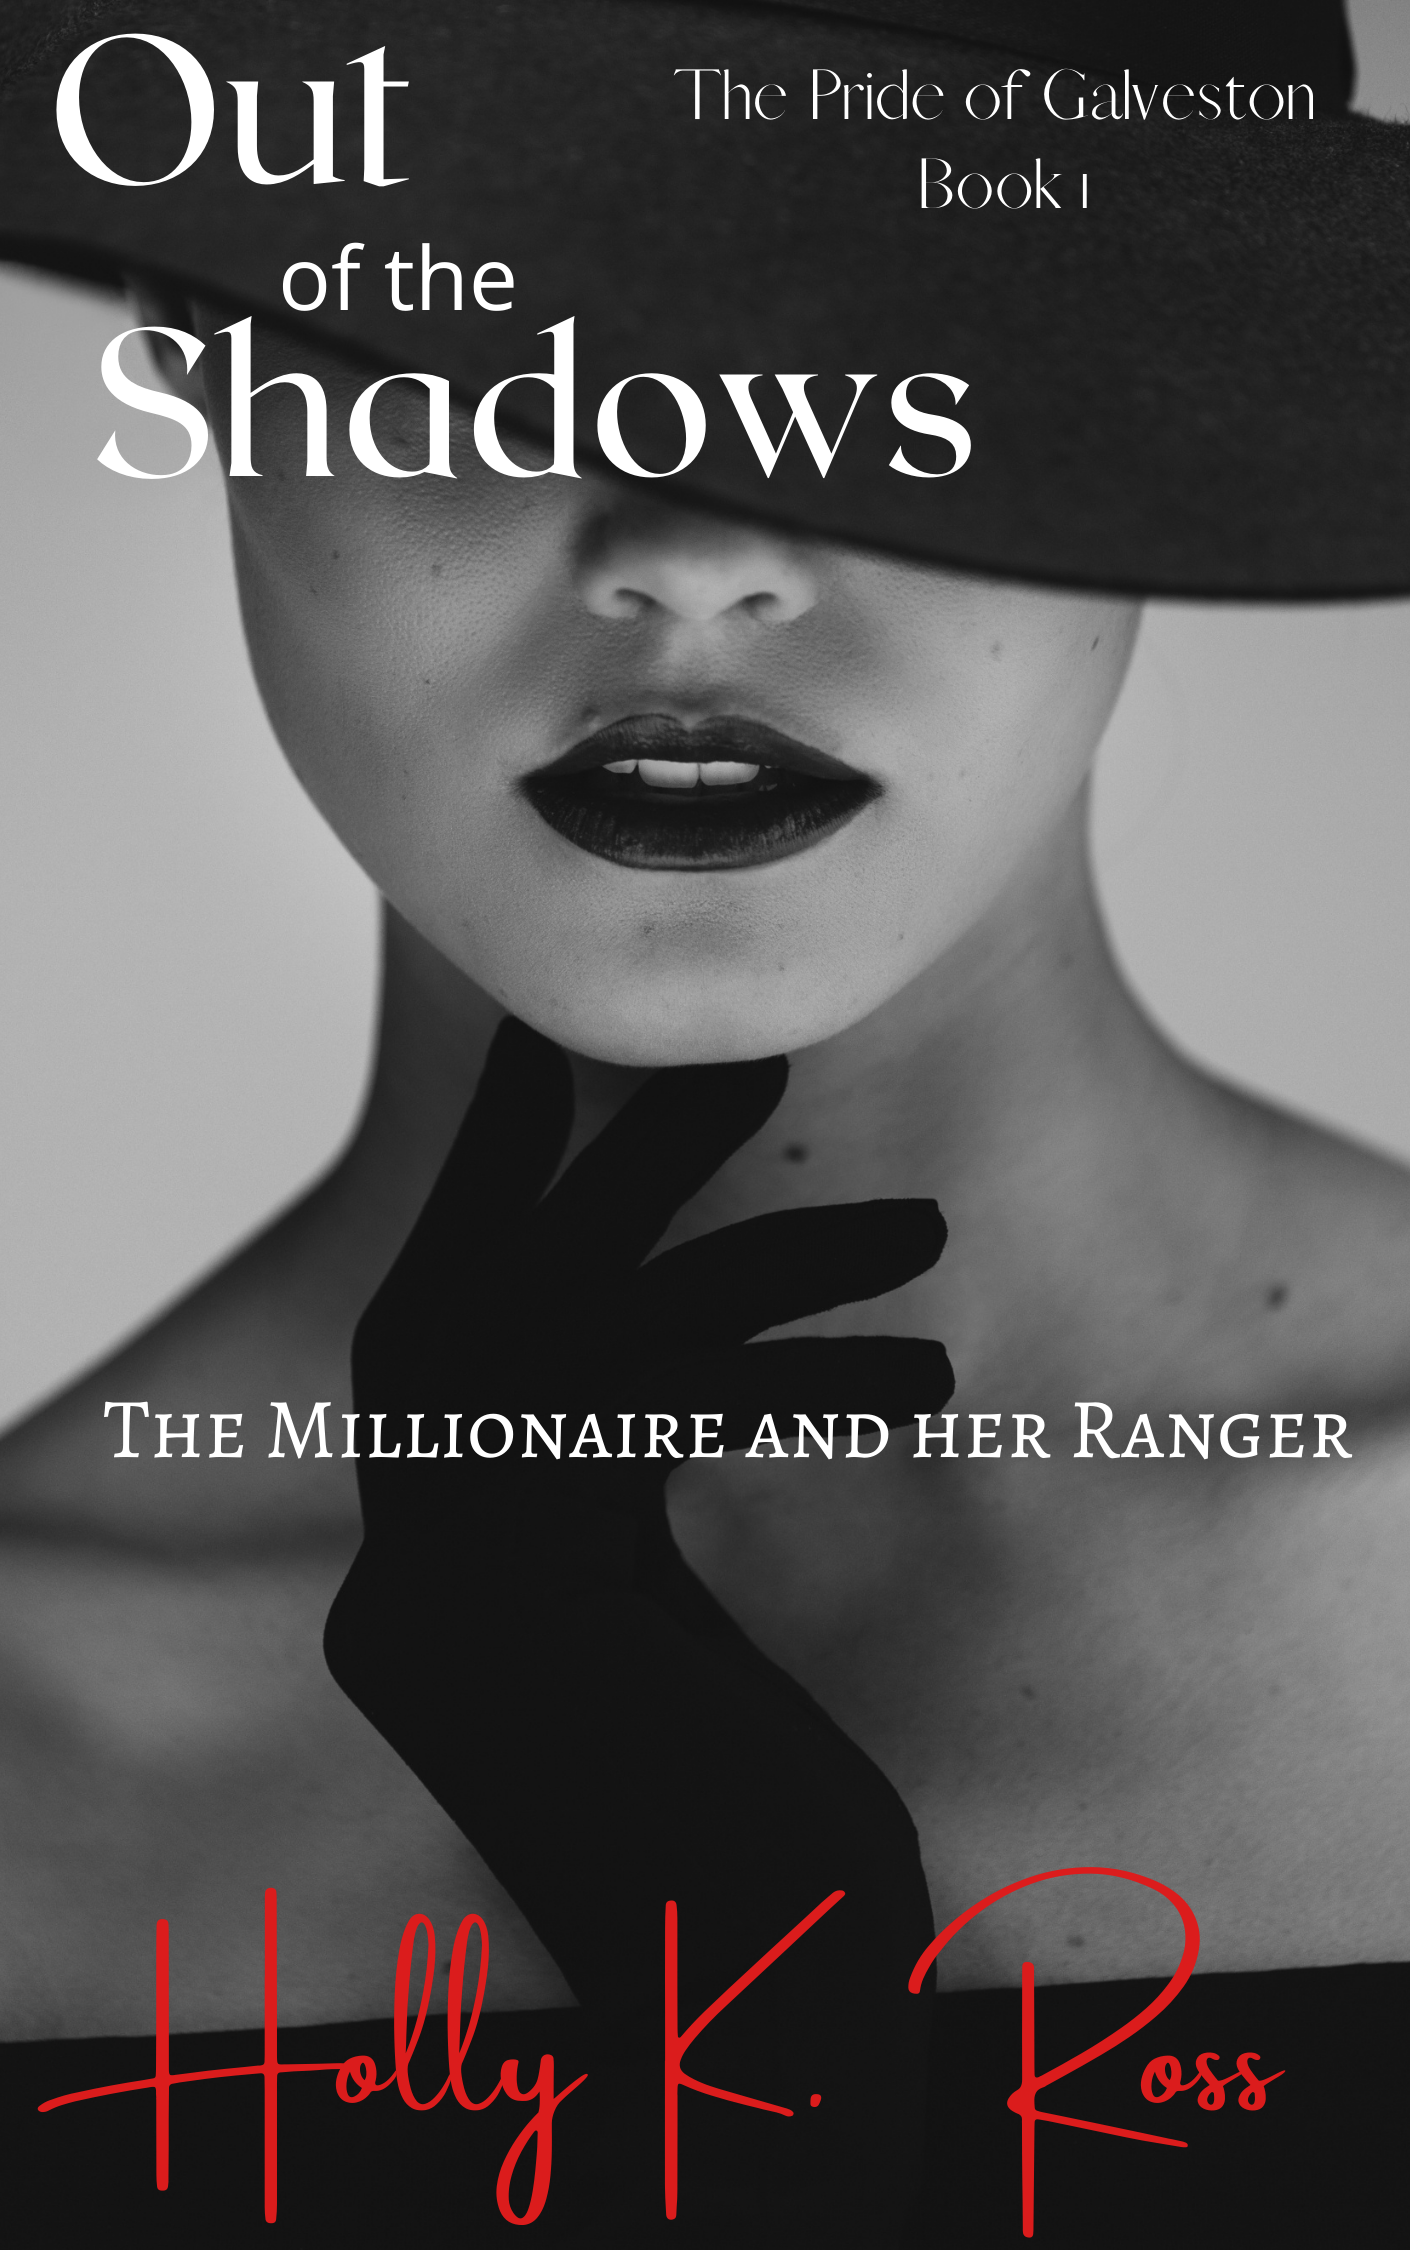 Out -of- the- Shadows- The- Millionaire -and -her -Ranger- Romance- Novel